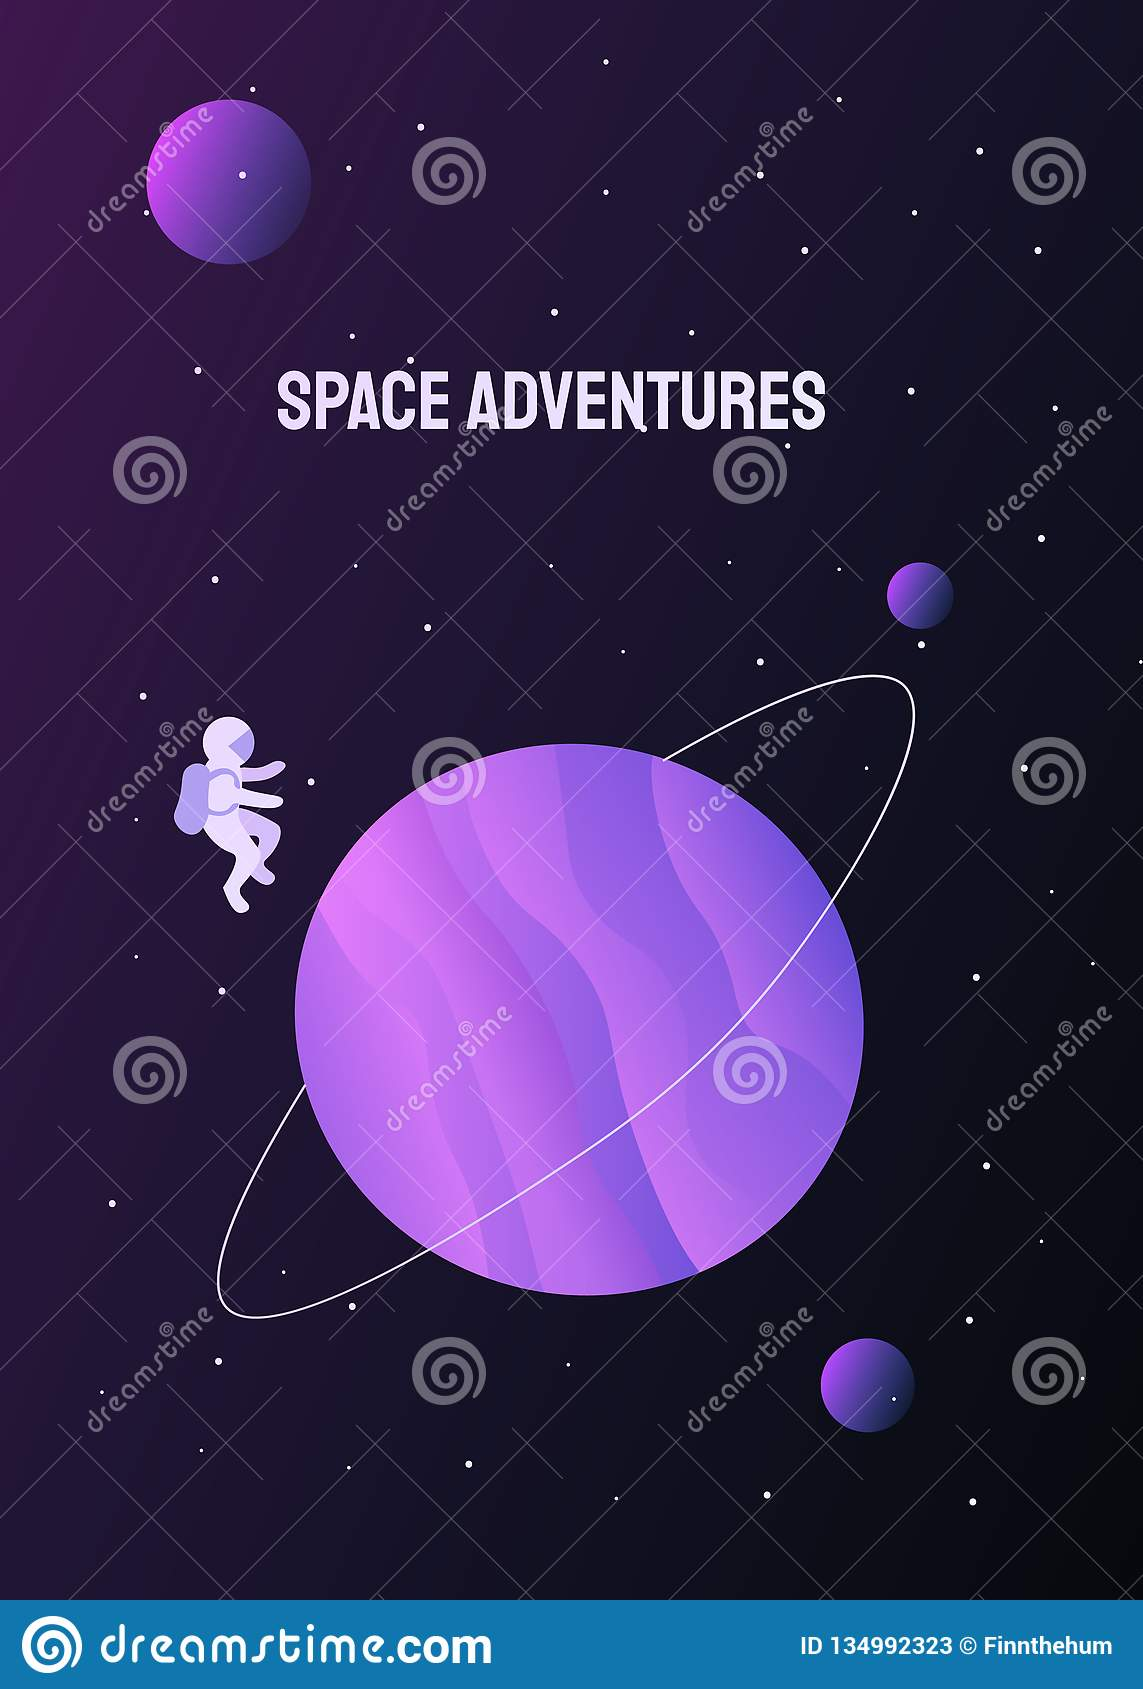 Astronaut in outer space and colored planets around him